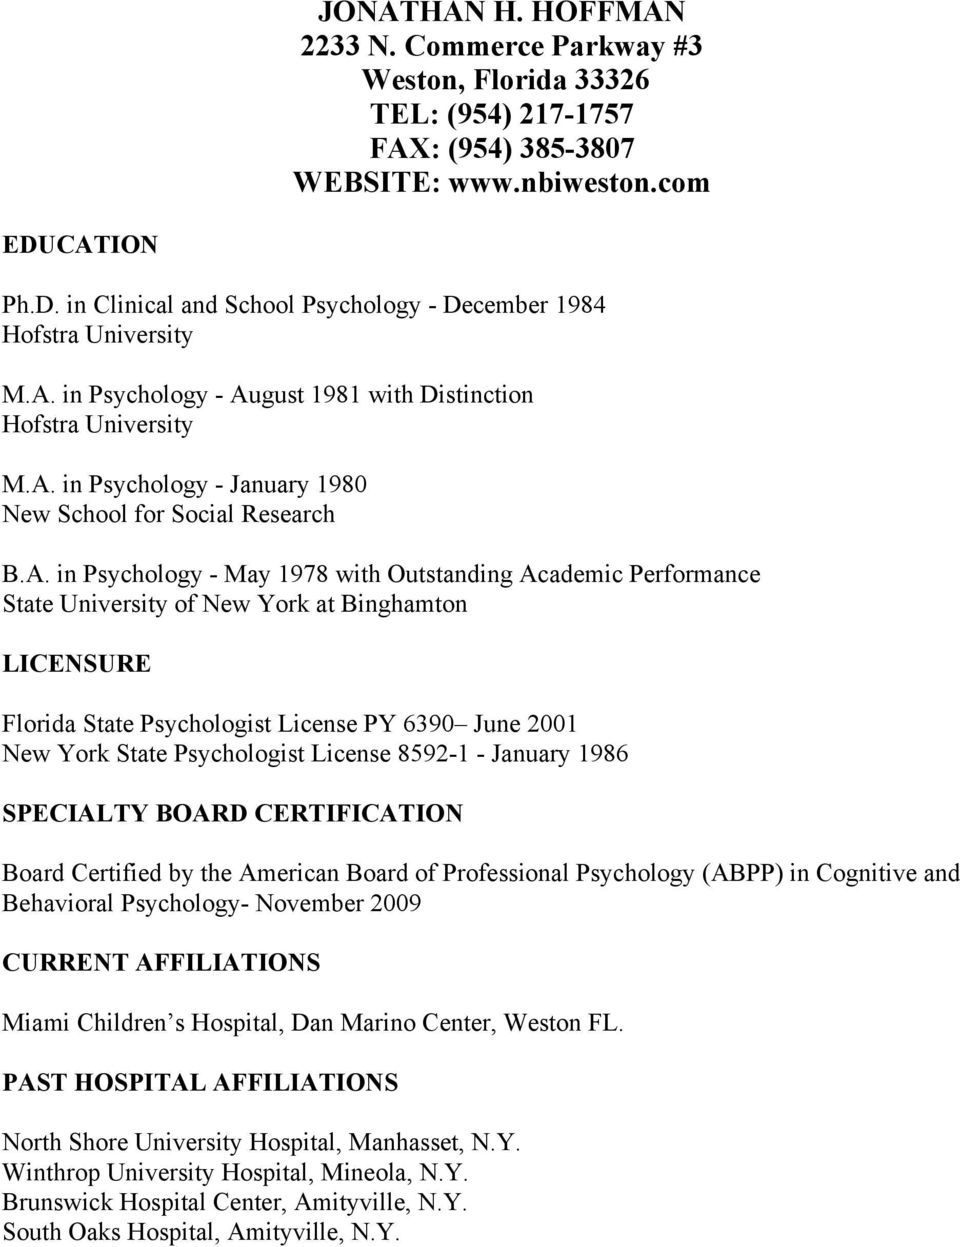 A. in Psychology - May 1978 with Outstanding Academic Performance State University of New York at Binghamton LICENSURE Florida State Psychologist License PY 6390 June 2001 New York State Psychologist